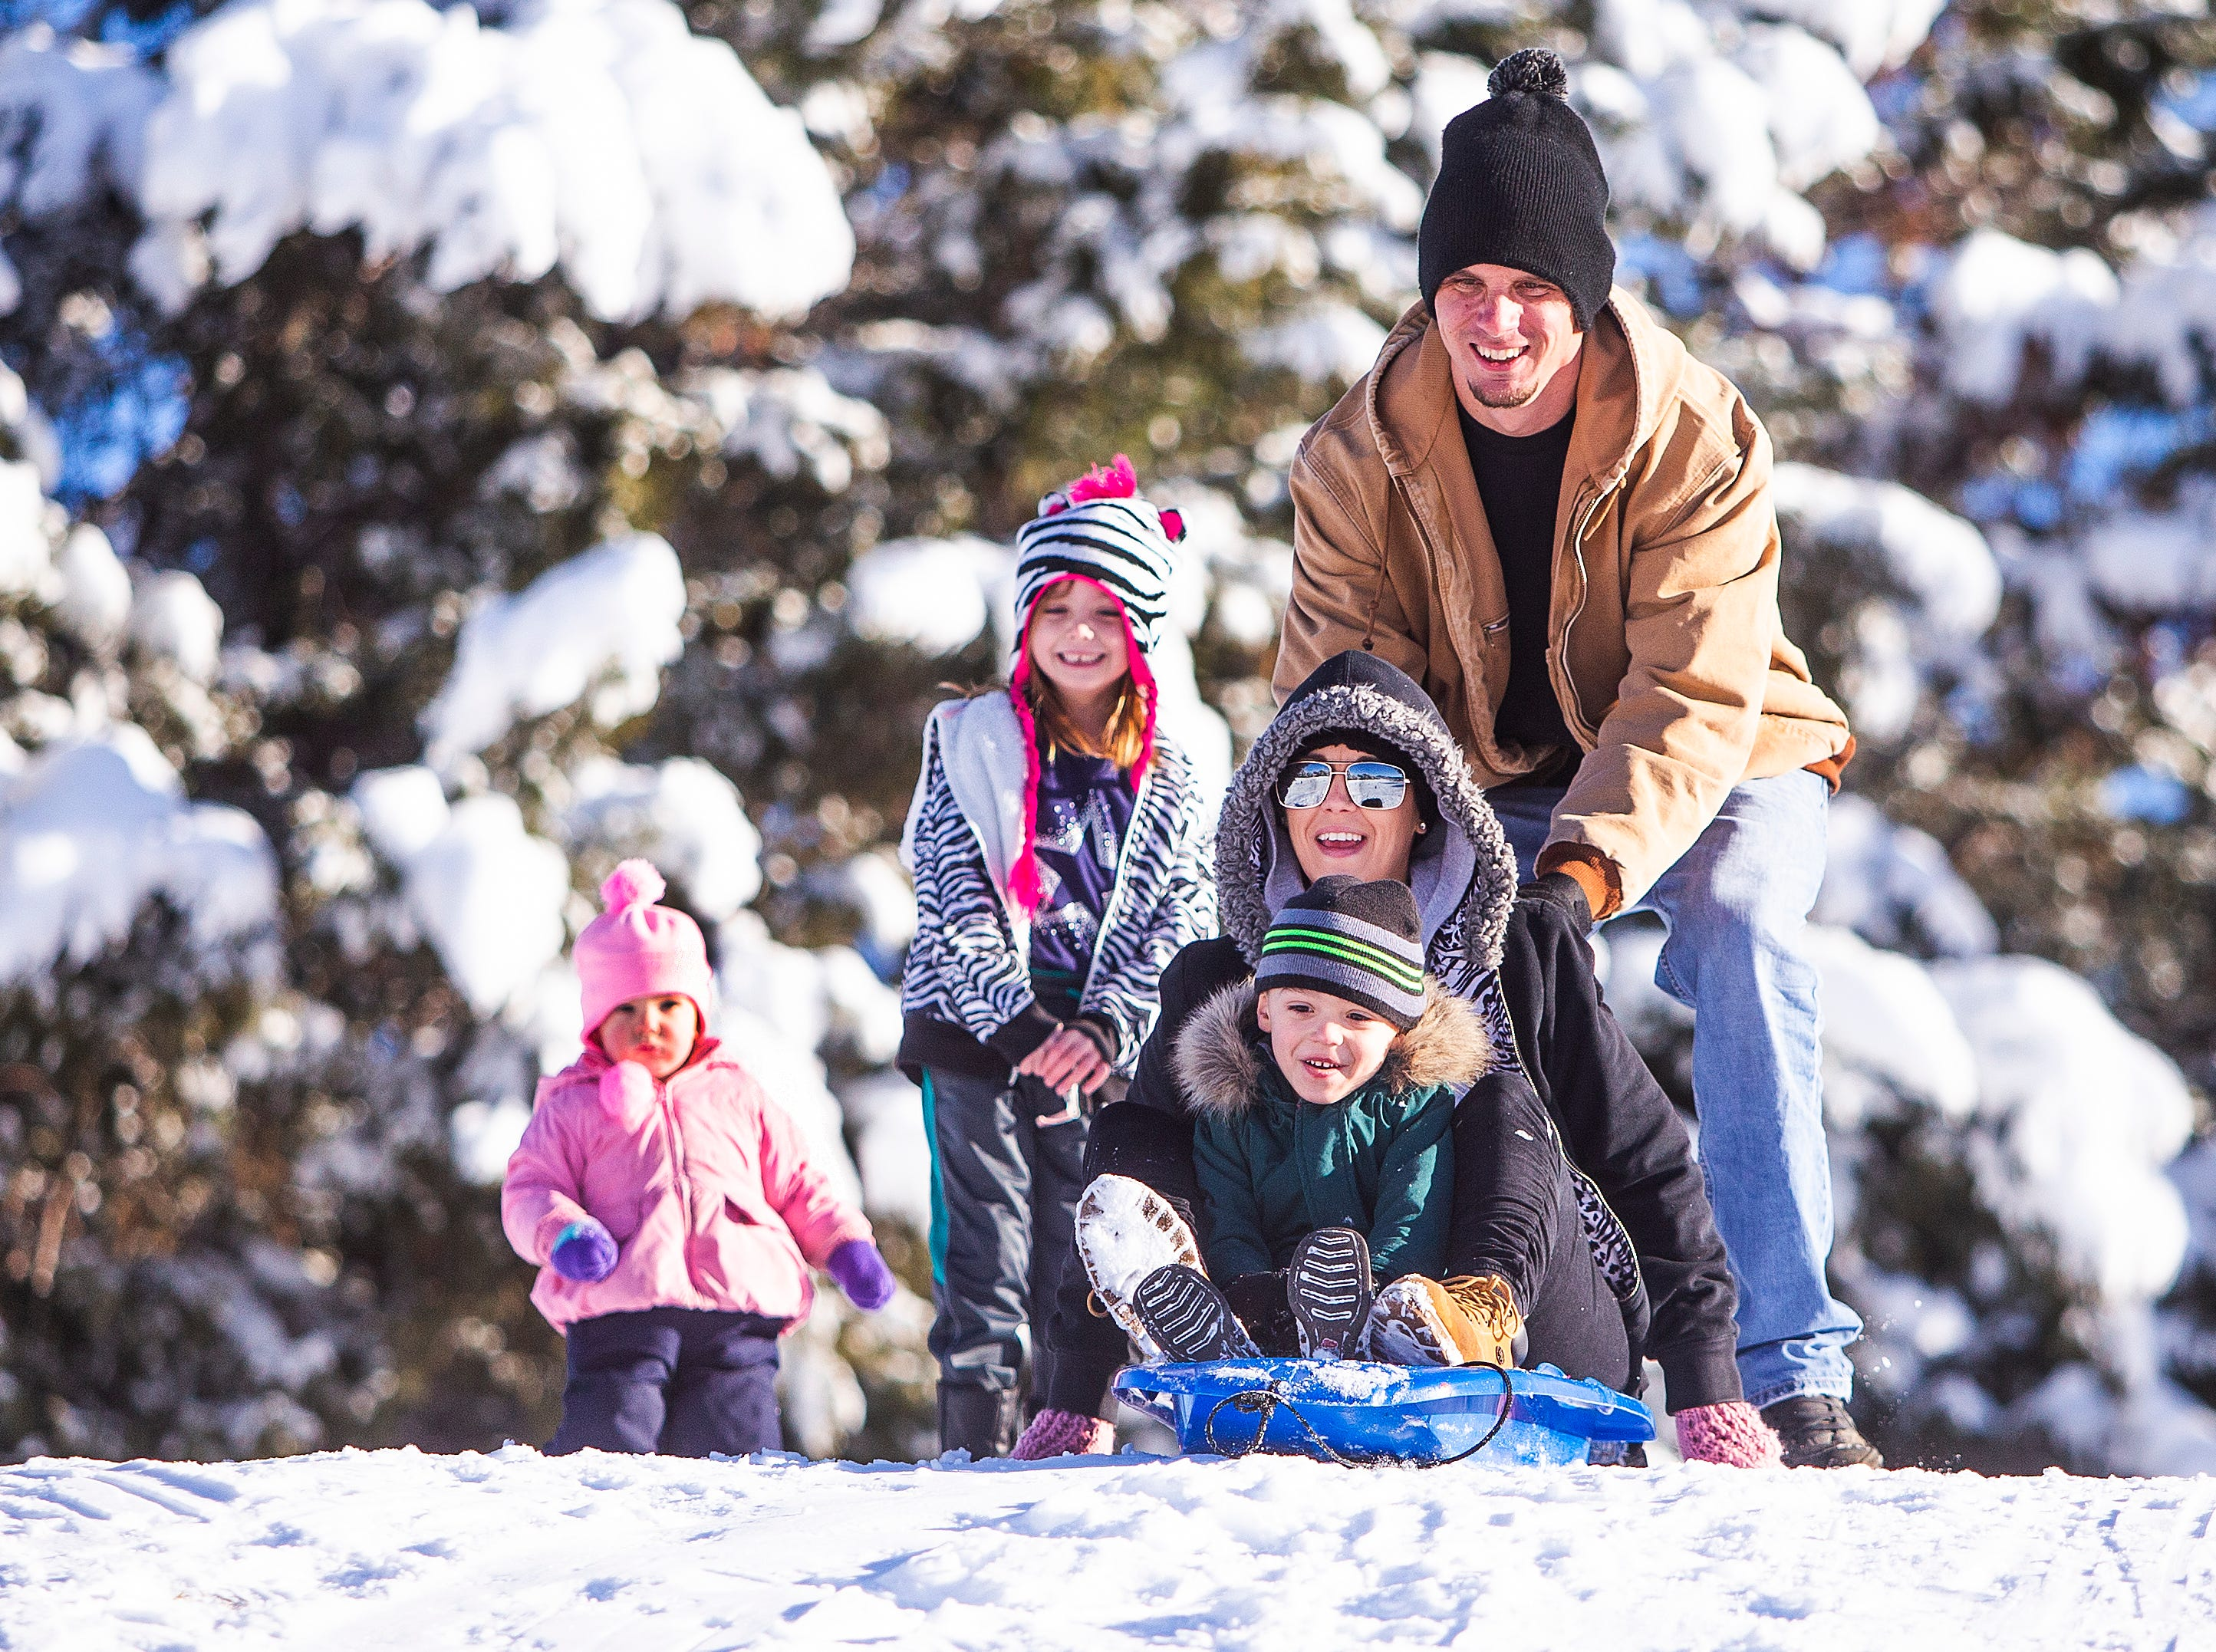 James Papa of Phoenix pushes his wife, Ashley, and son, Dylan, 4, down a hill on fresh snowfall at Green Valley Park in Payson on New Year's Day, 2019.